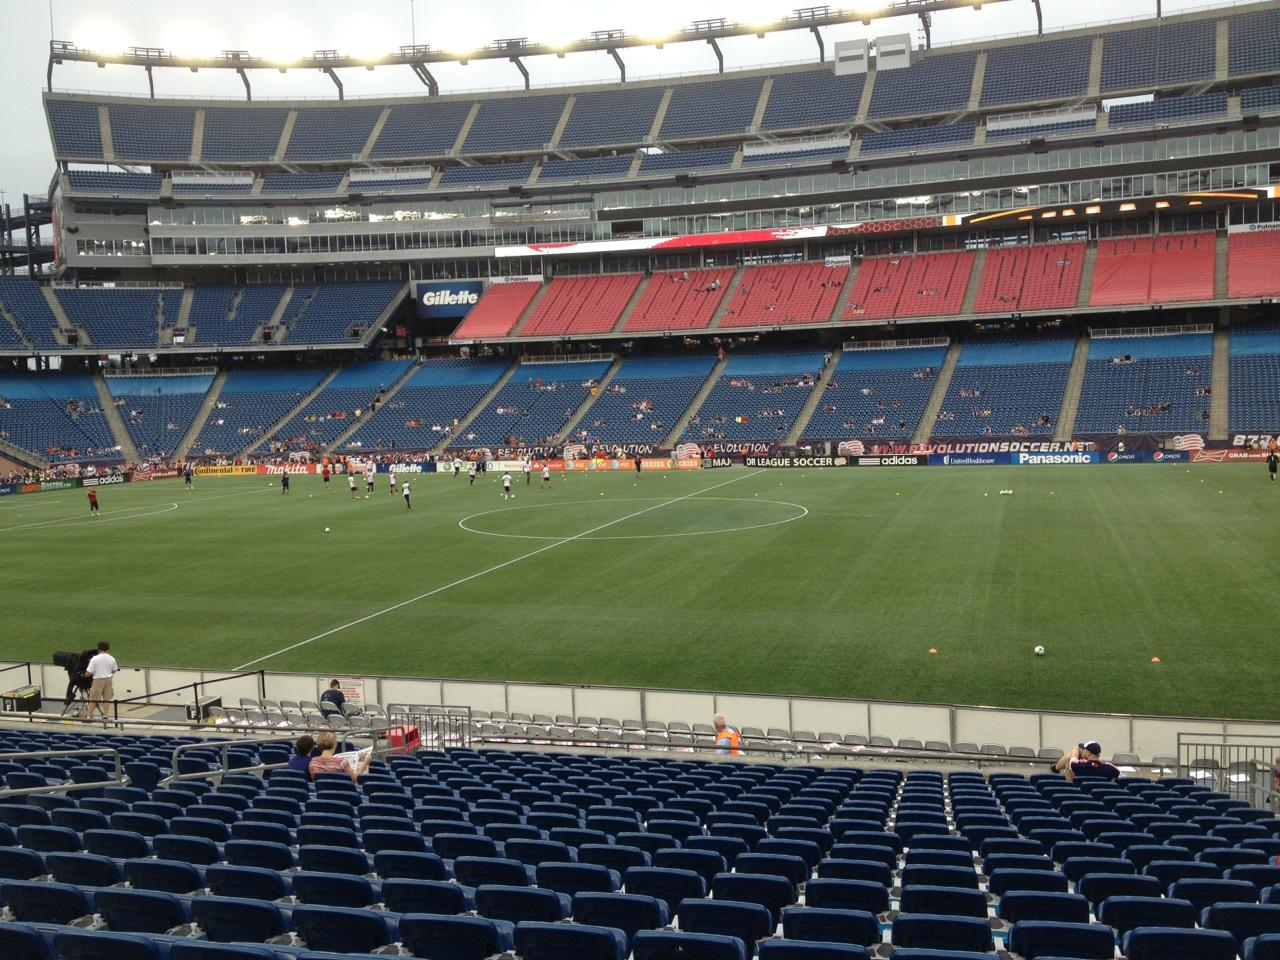 Gillette Stadium Section 130 Row 20 Seat 7